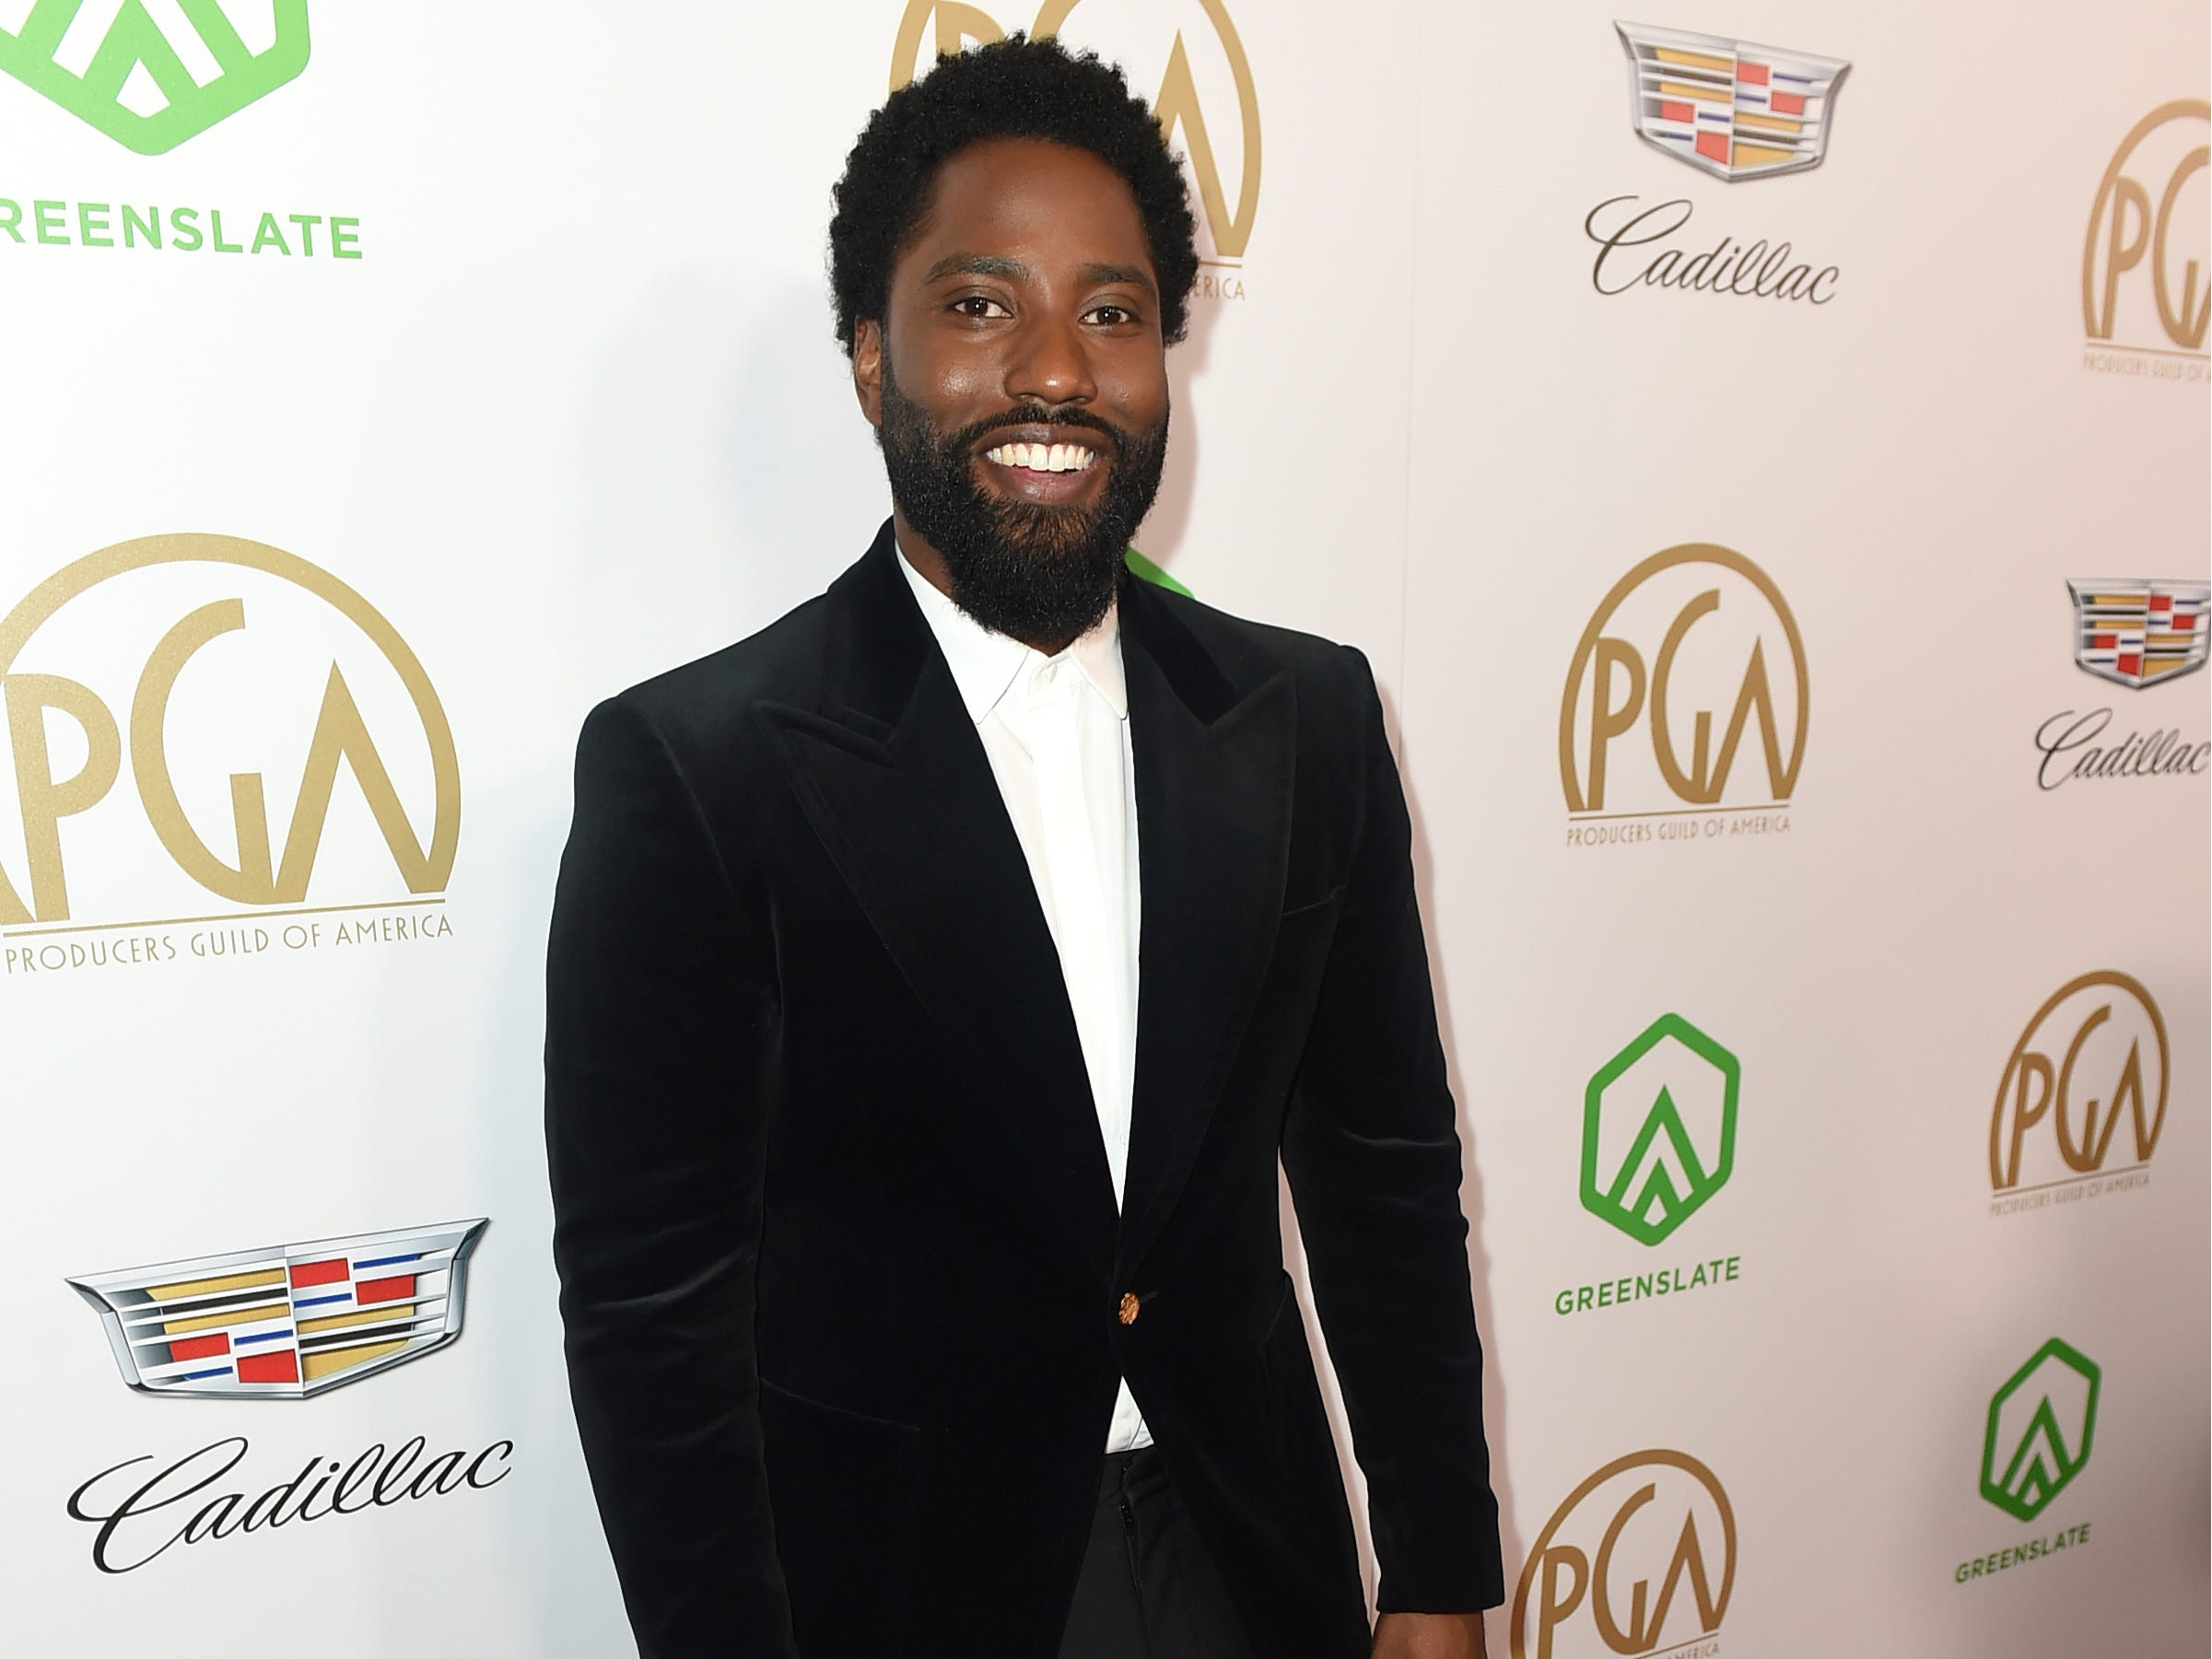 IMAGE DISTRIBUTED FOR PRODUCERS GUILD OF AMERICA - John David Washington arrives at the 30th Producers Guild Awards presented by Cadillac at the Beverly Hilton on Saturday, Jan. 19, 2019, in Beverly Hills, Calif. (Photo by Jordan Strauss/Invision for Producers Guild of America/AP Images) ORG XMIT: CALB109